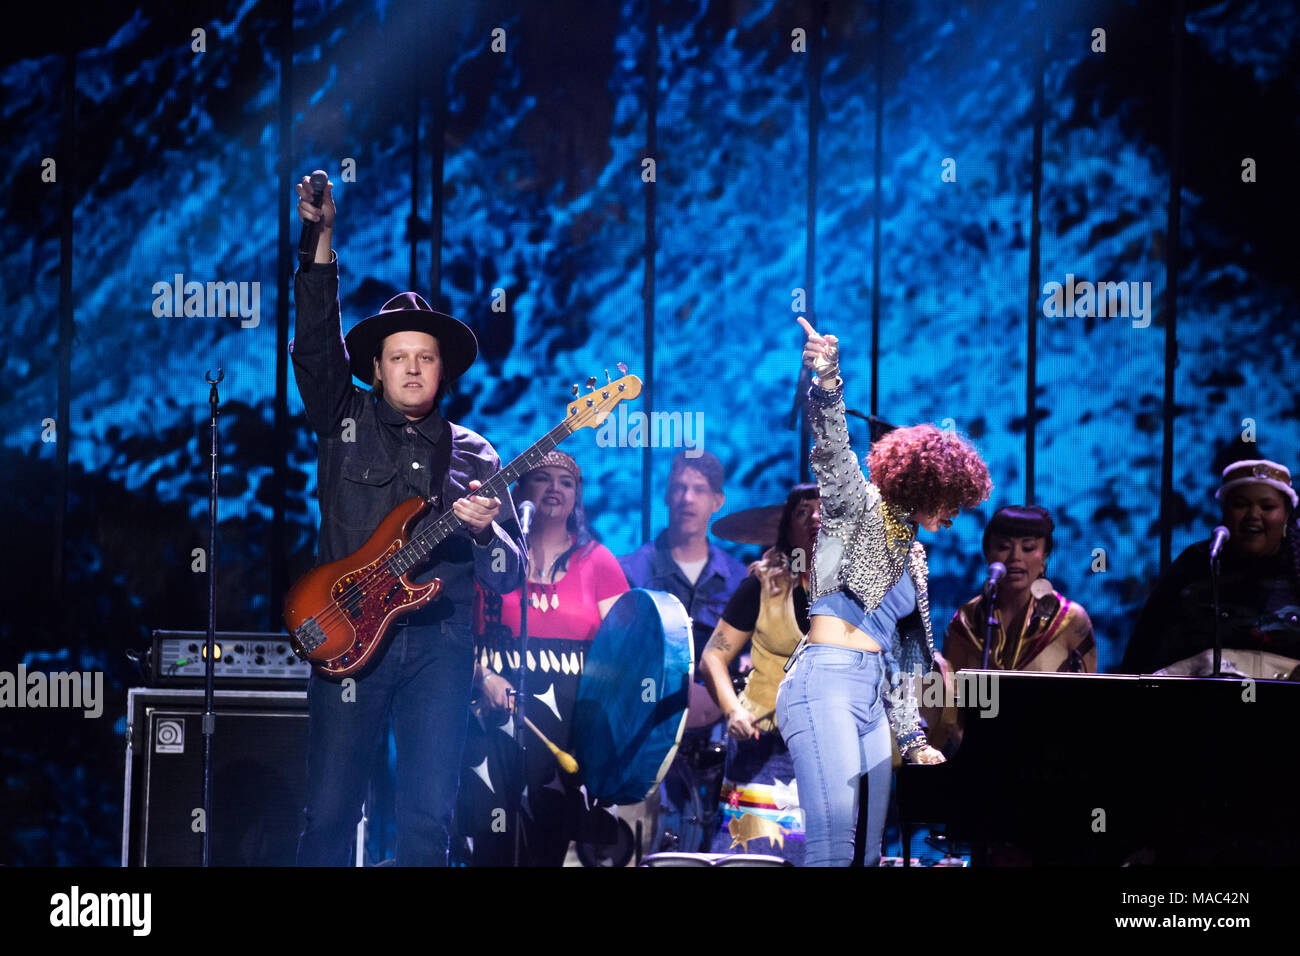 Vancouver, CANADA. 26th March, 2018. Arcade Fire performing at the 2018 Juno Awards in Vancouver. Credit: Bobby Singh/fohphoto - Stock Image